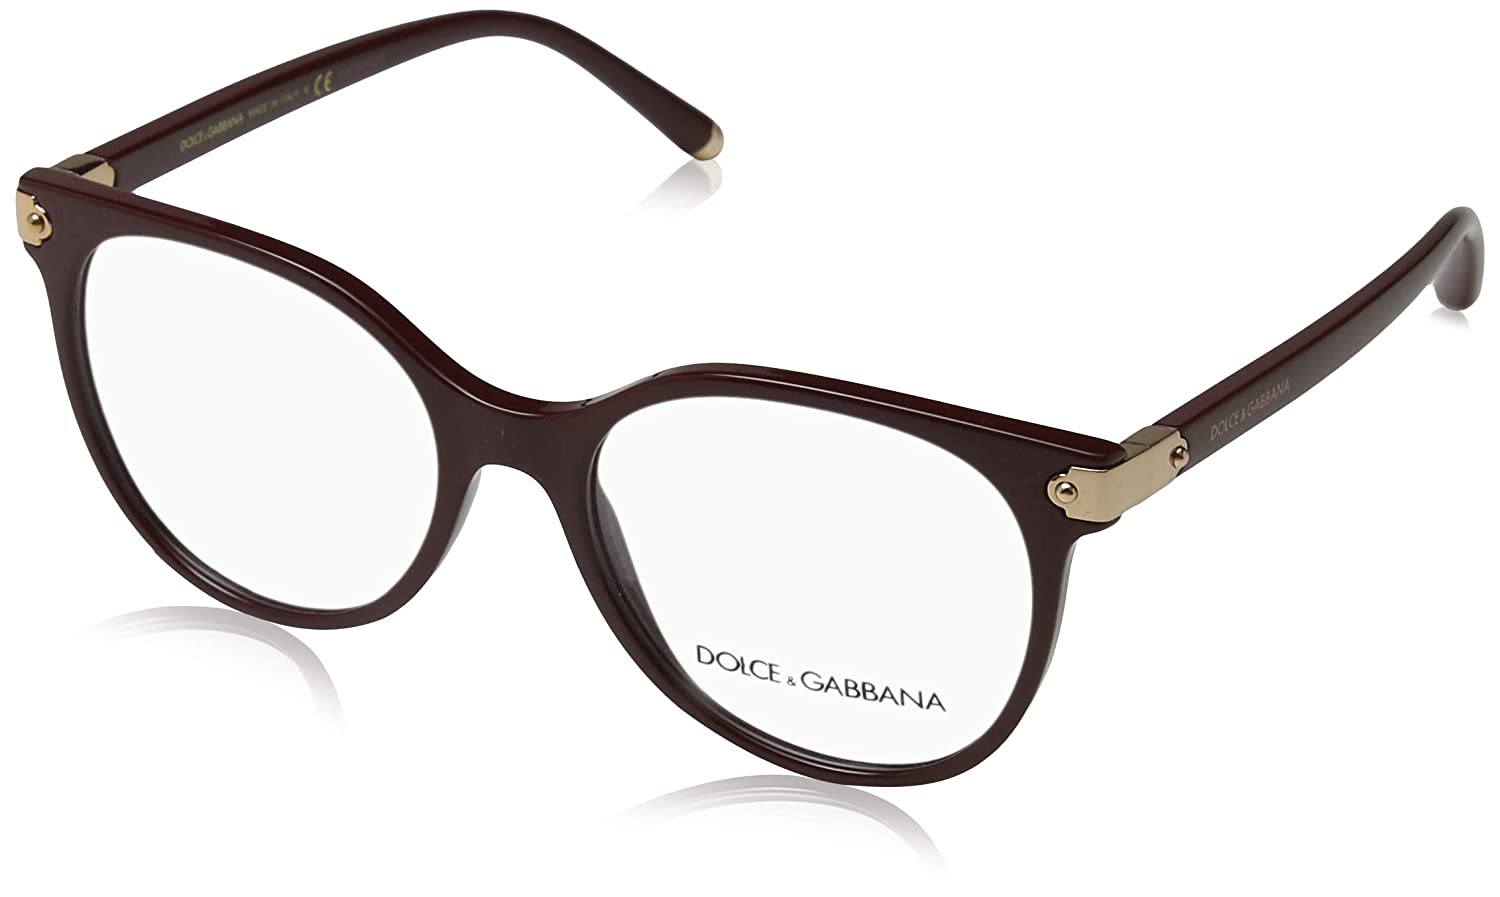 Amazon.com: Gafas Dolce & Gabbana DG 5032 3091 BORDEAUX ...